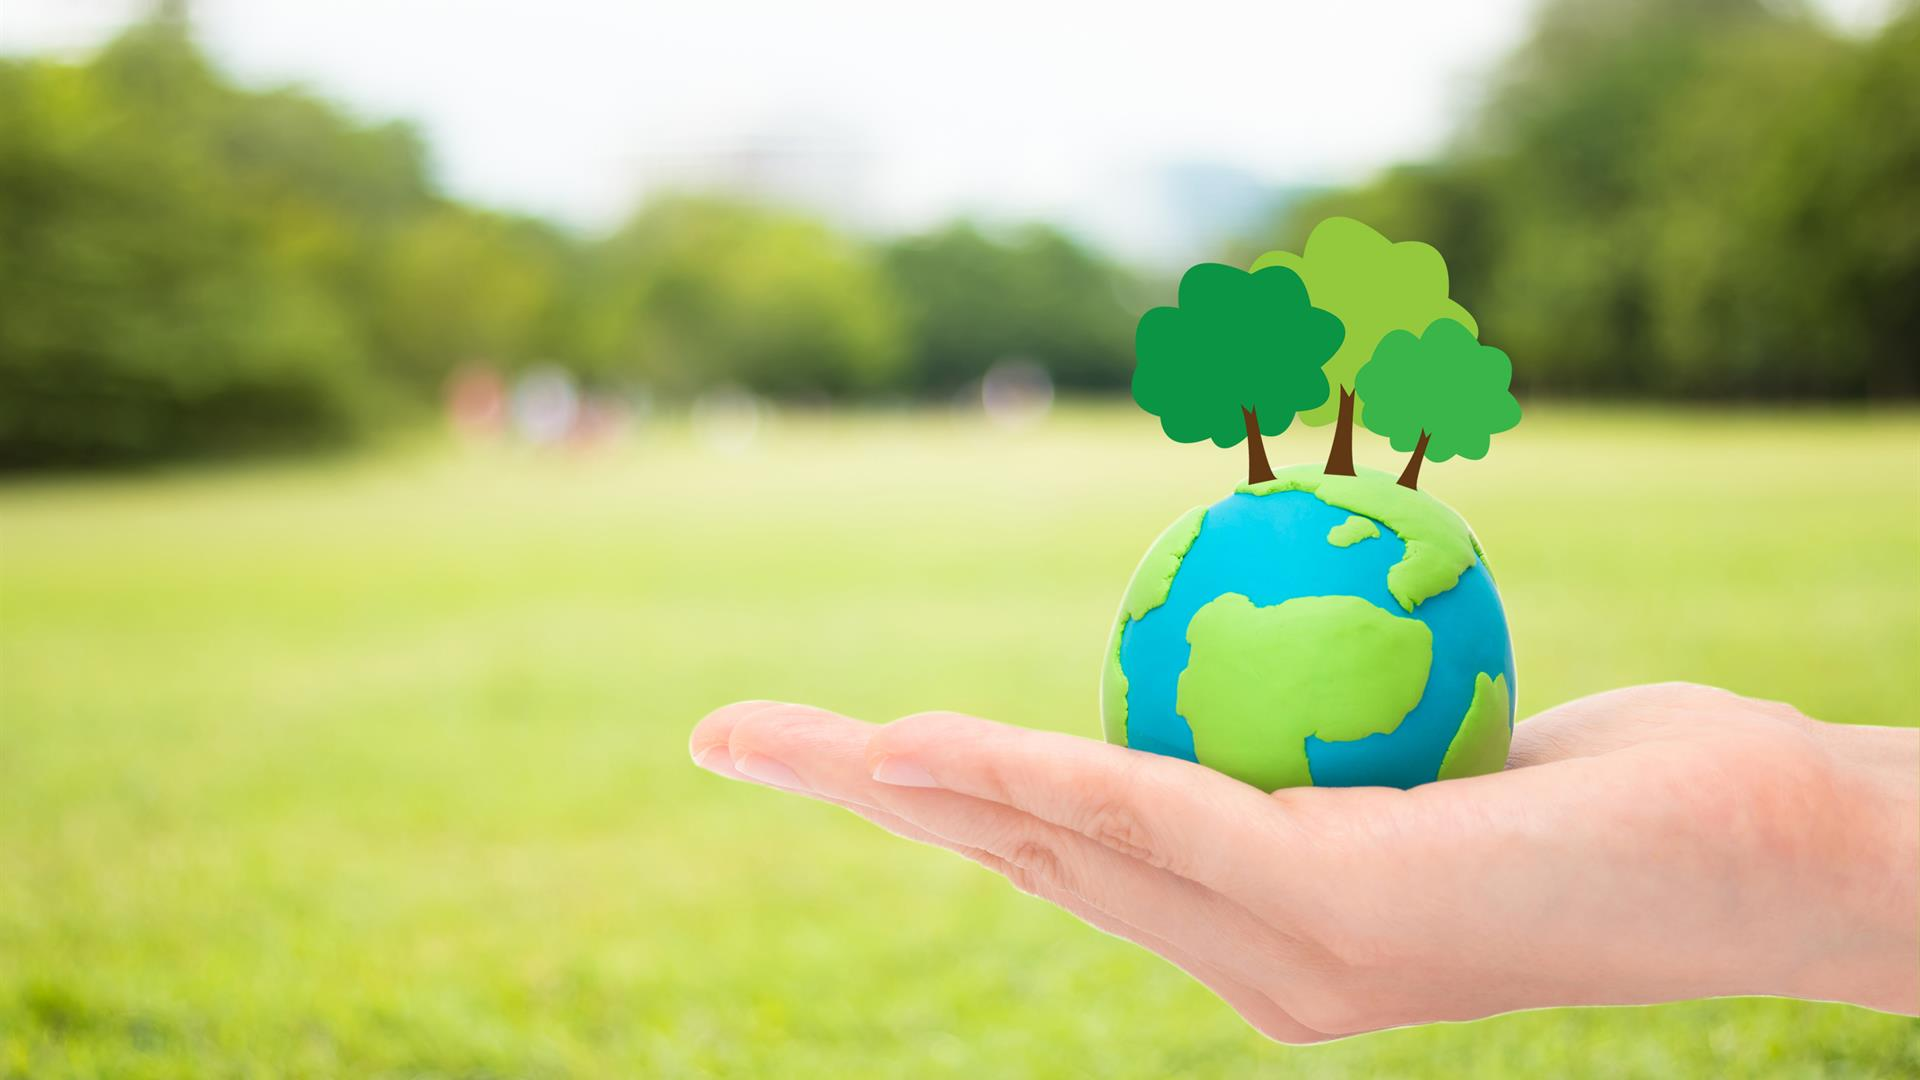 Human Hands Holding Plant Trees Globe Planet Earth Blurred Green Garden Nature Background Ecology Concept